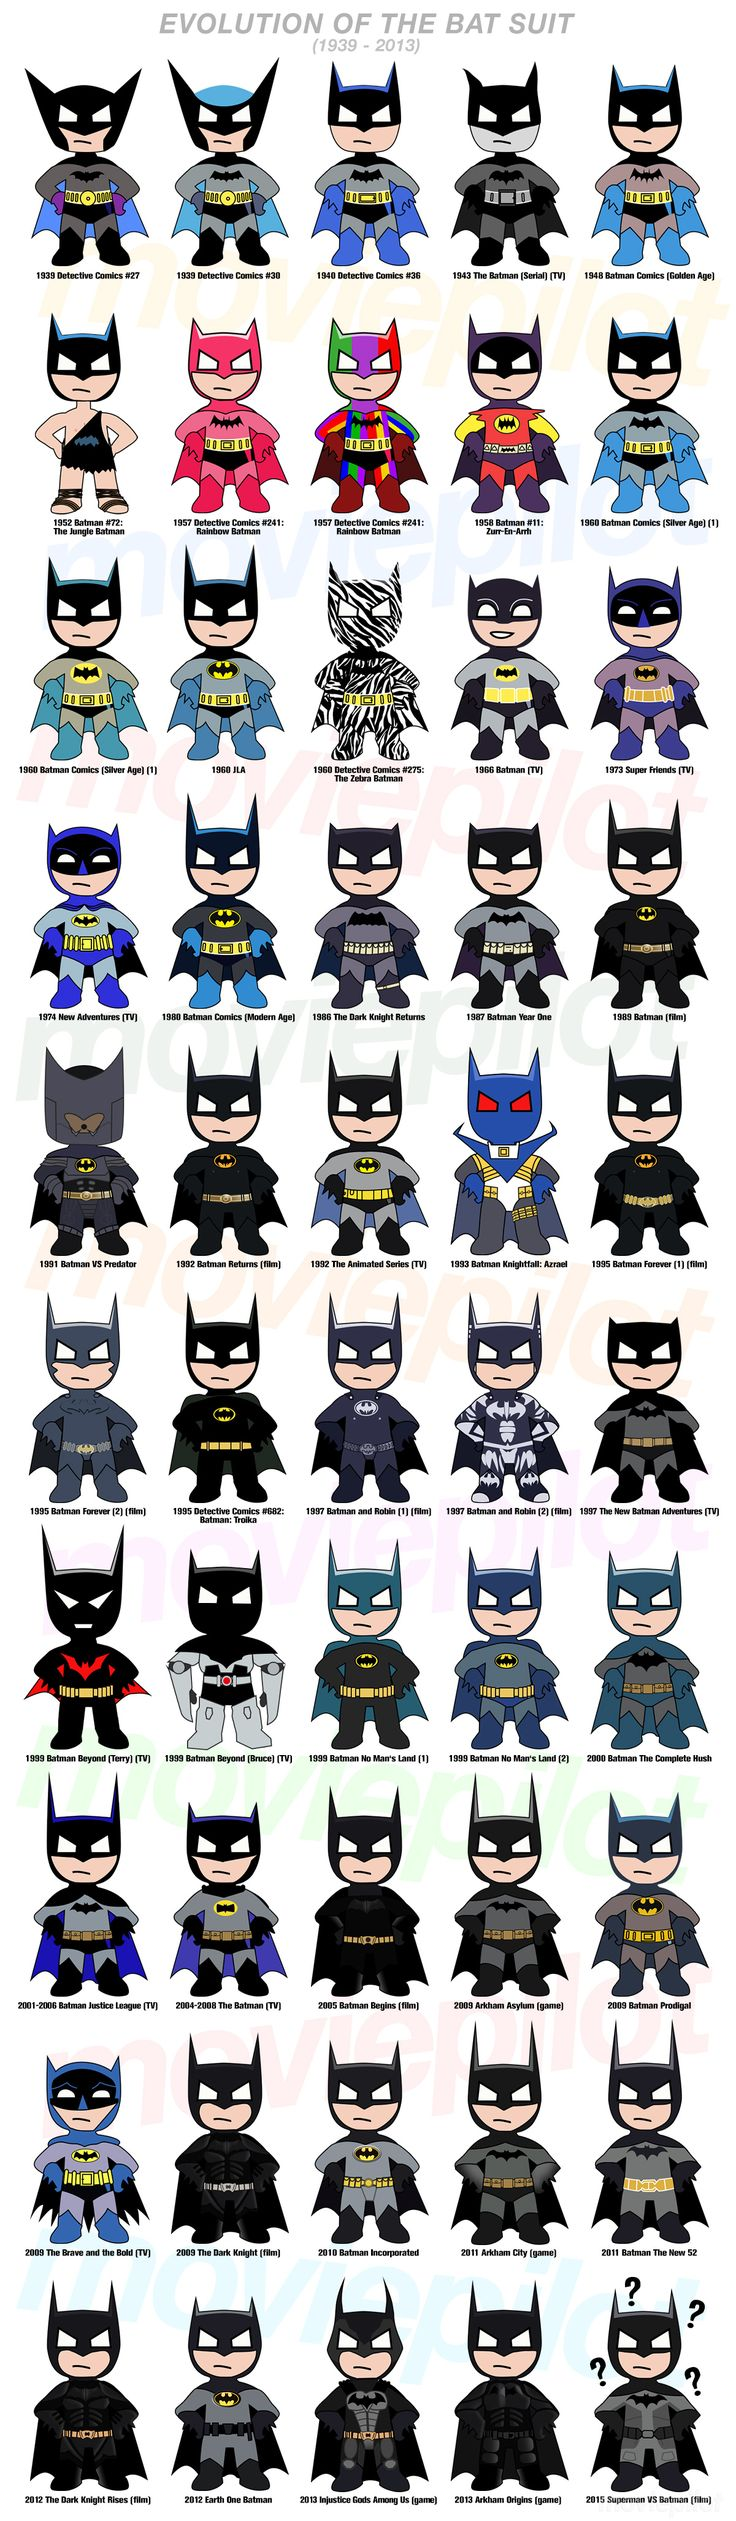 1957 and 60 were not the best years for batman... Brightest, yes... Poor batman